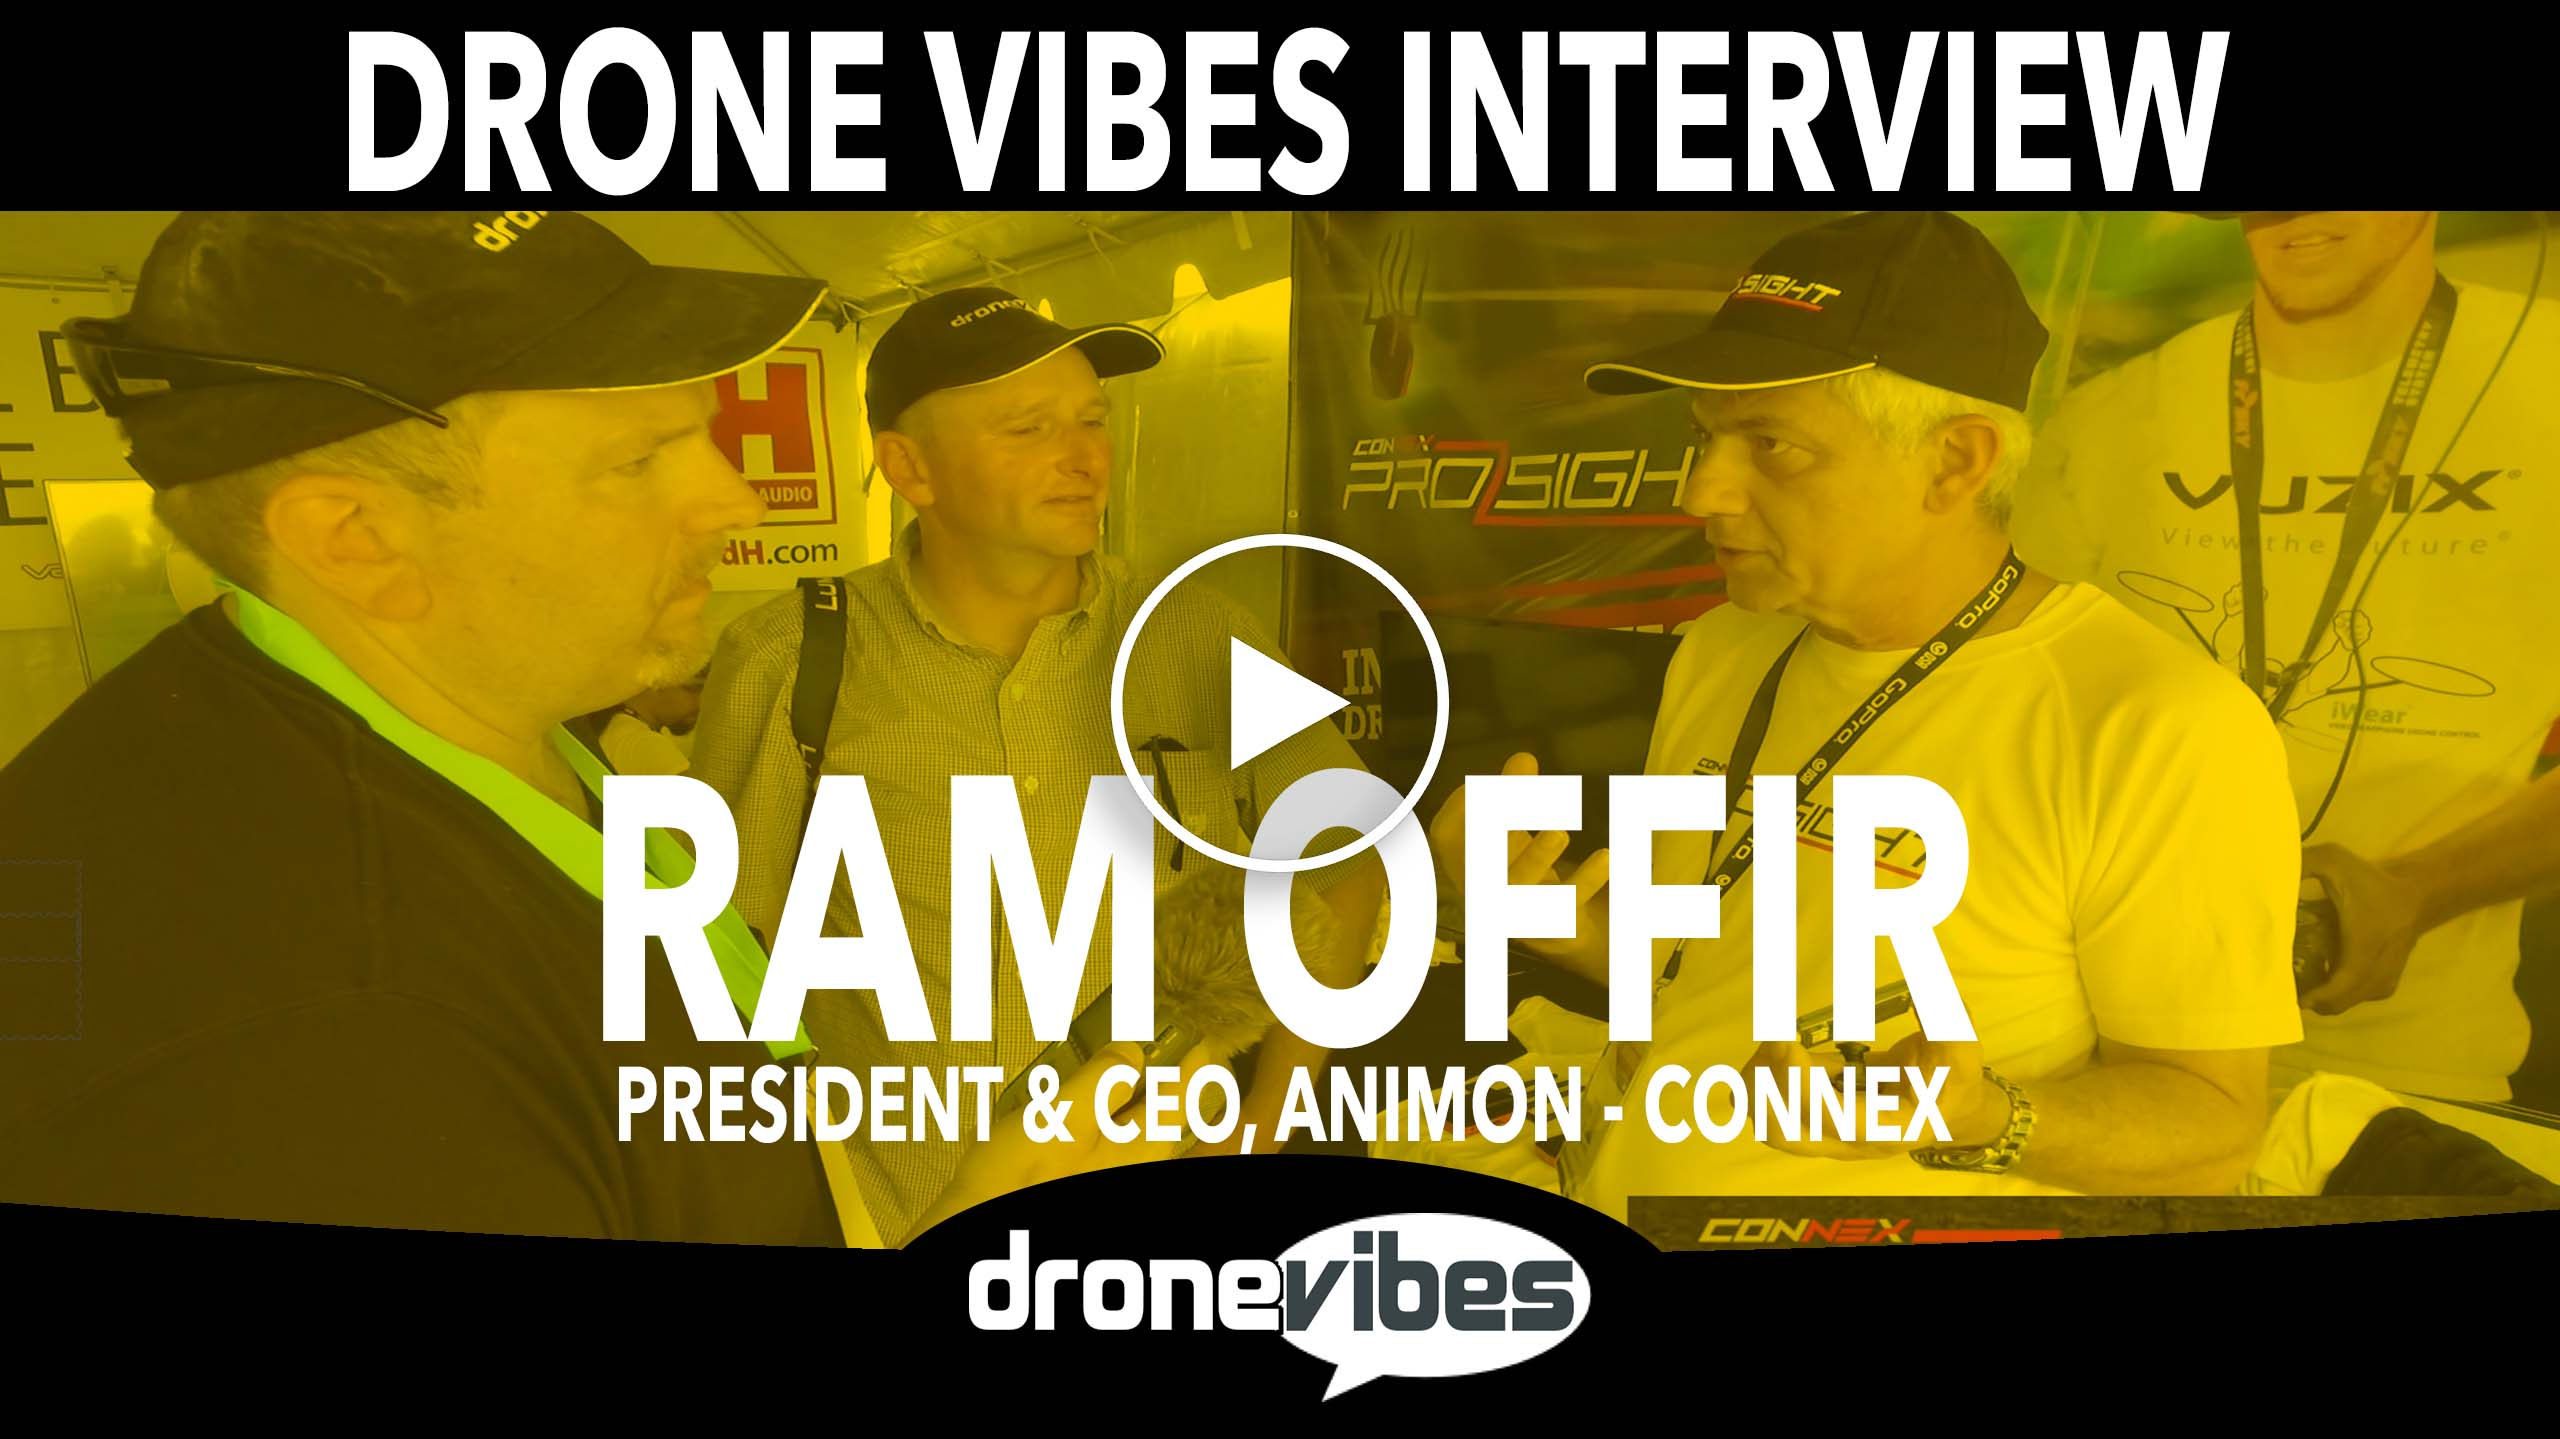 Drone Vibes Video: Interview with Ram Offir, CEO of Animon about Connex ProSight Digital Video System for FPV Racing